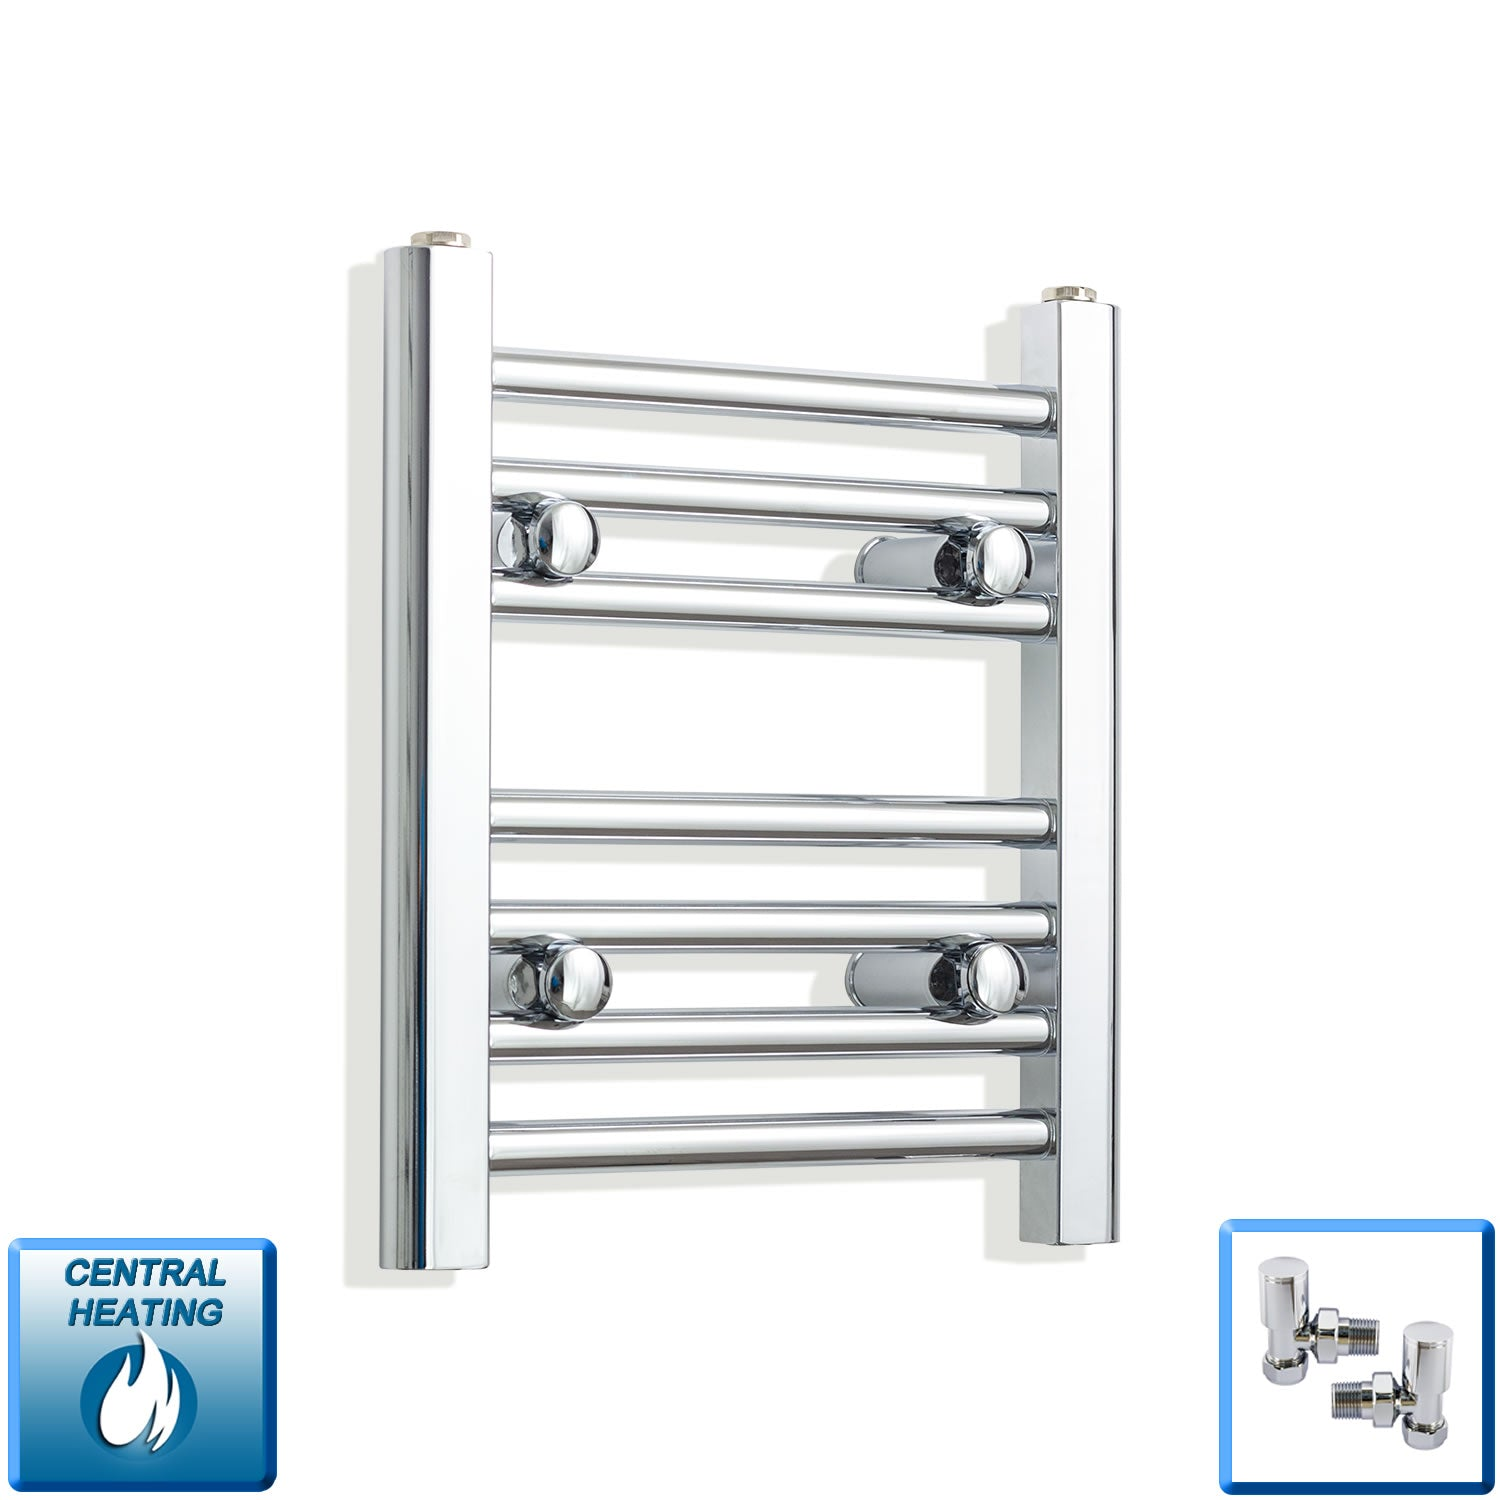 350mm Wide 400mm High Chrome Towel Rail Radiator With Angled Valve